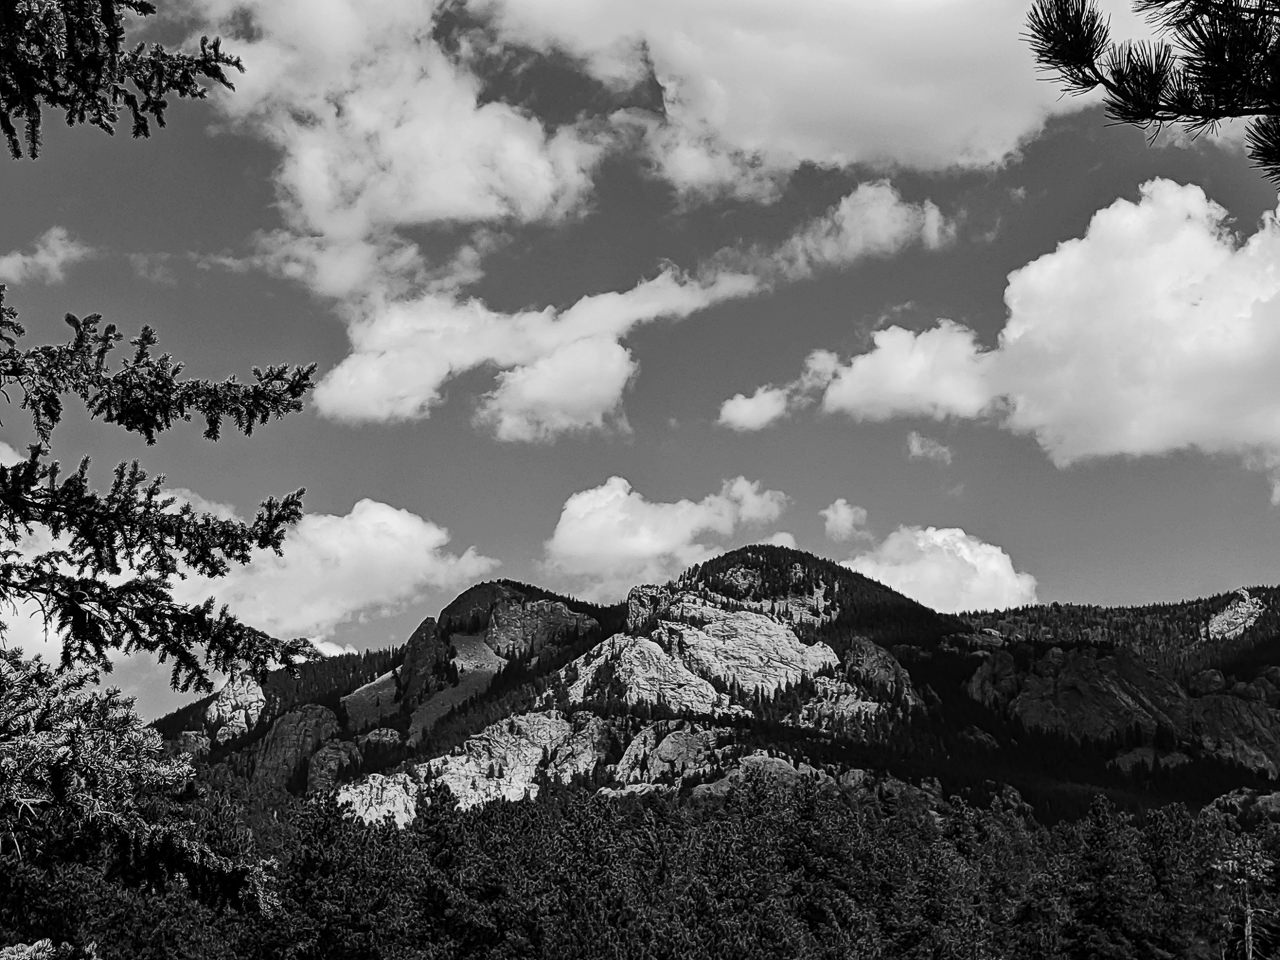 Day 238 - 365 Day B&W Photo Challenge - Wonderful views of Black Mountain outside of Pike National Forest - Google Pixel 3 , Prbocessed with VSCO with b3 preset